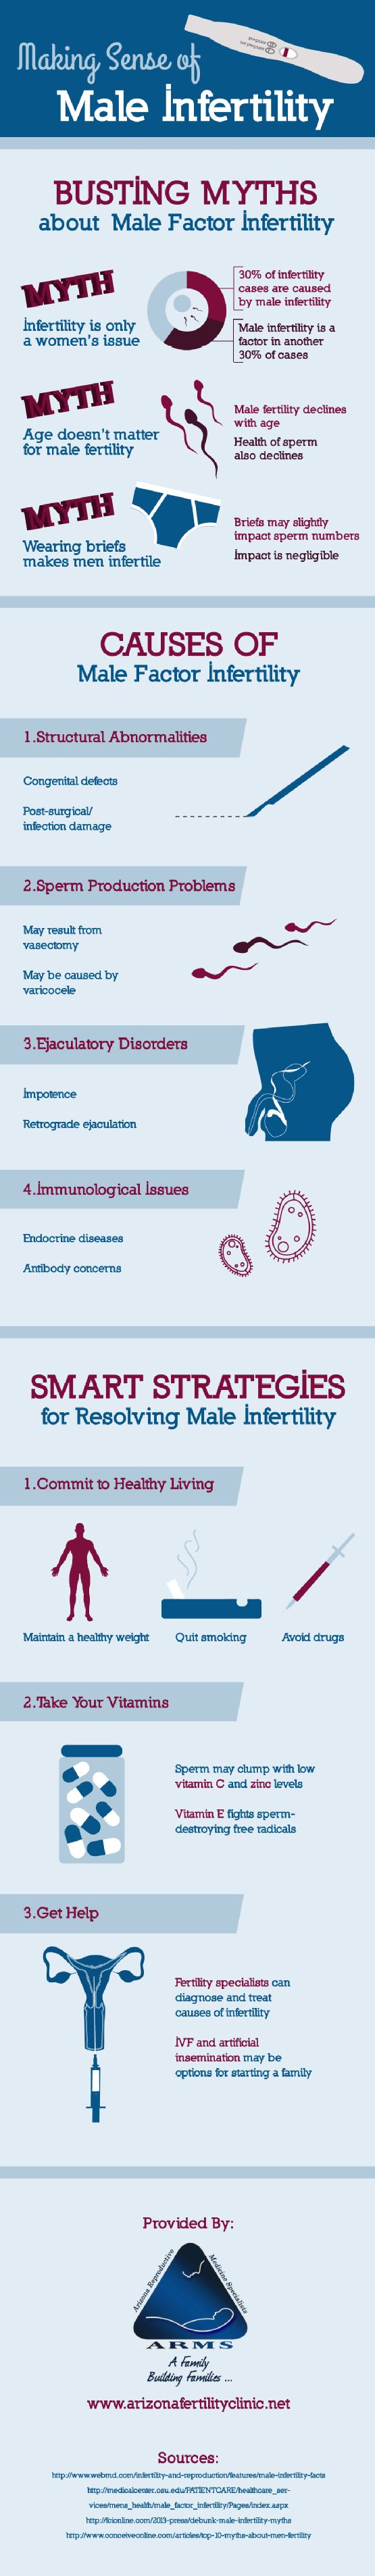 Getting professional help is a good idea if you're struggling with male infertility. Fertility specialists can diagnose and treat many different causes of infertility in men. Find out more with this infographic.